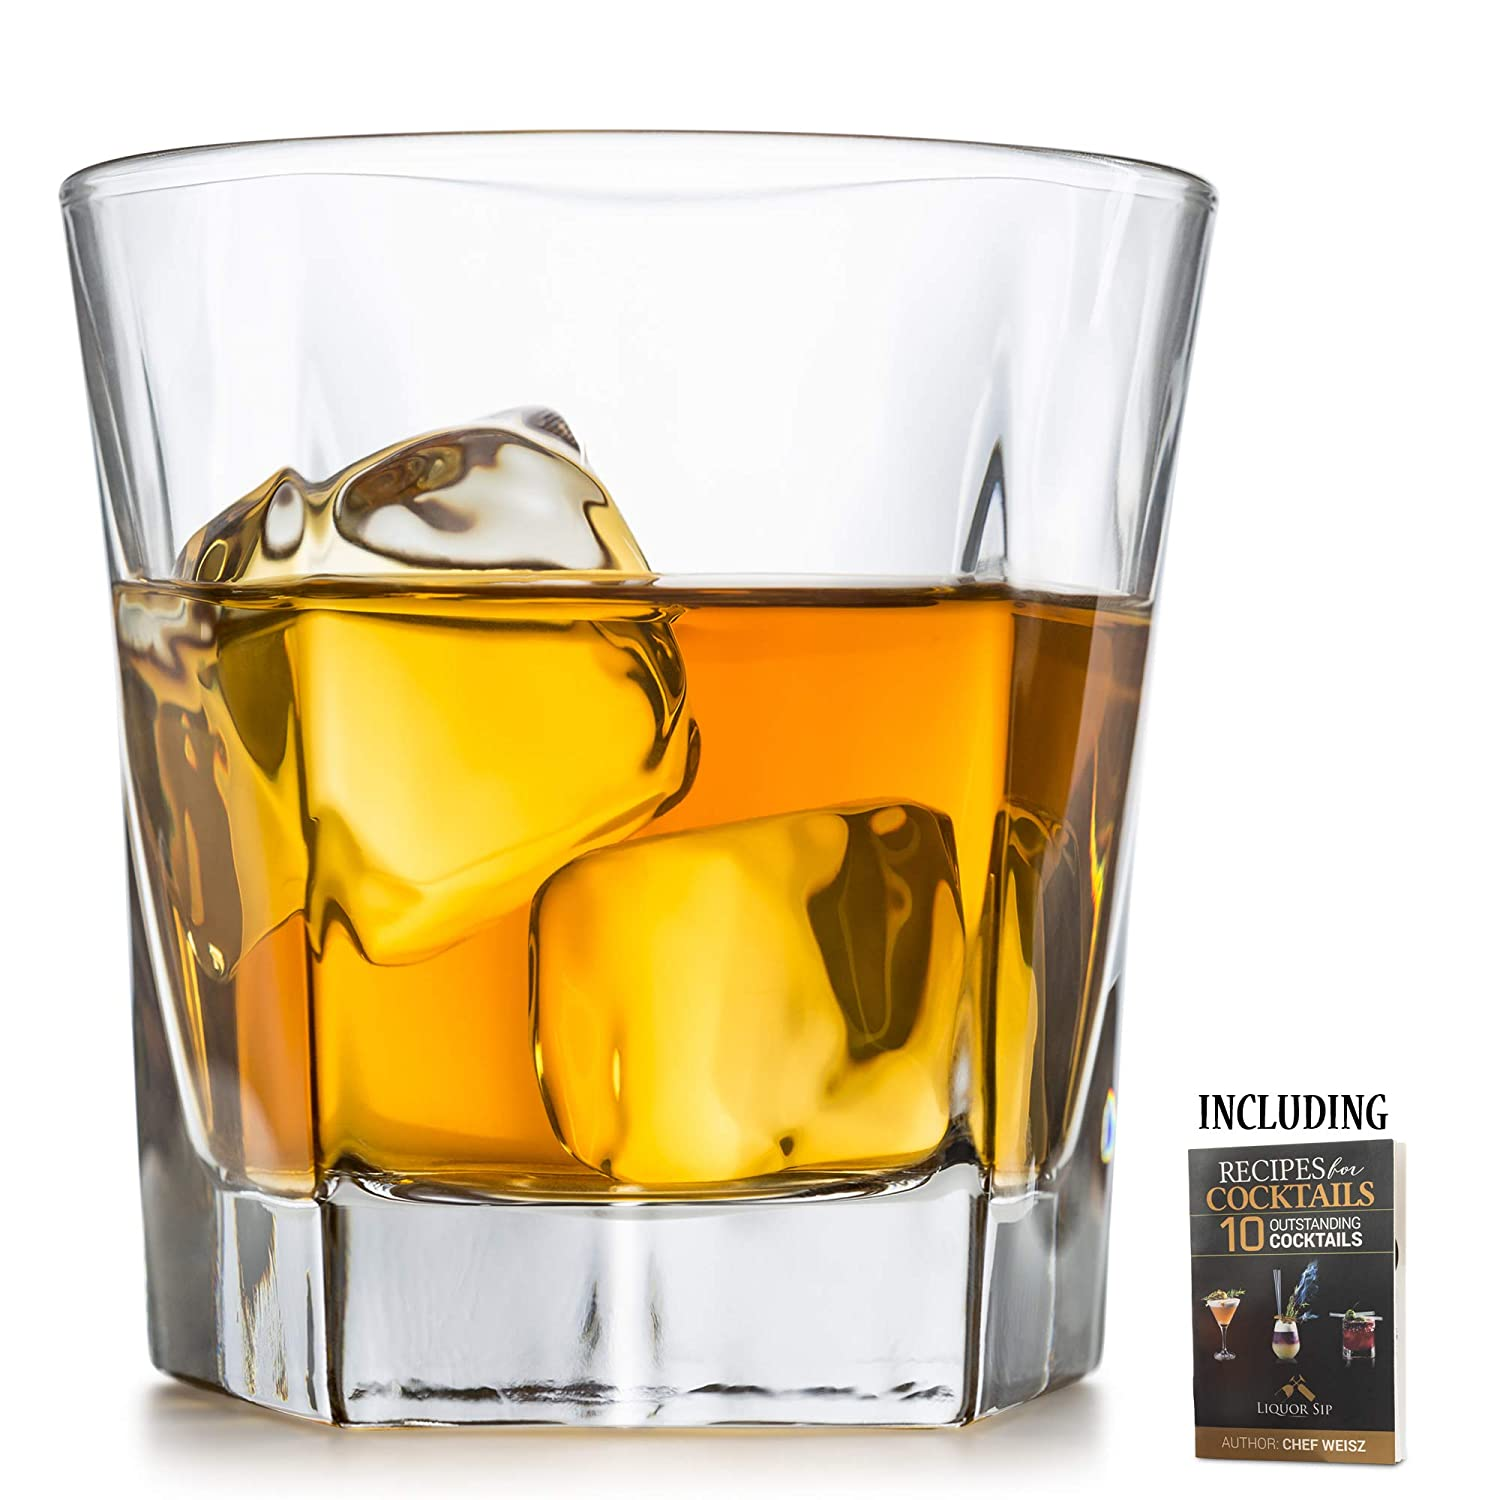 Whiskey Glasses, Set Of 2 – By Liquor Sip. Elegant Design- Large 12 oz Lead-free Tumblers- best glass cups for scotch or bourbon -10 Bonus Refreshing Cocktail Recipes enclosed in a stylish gift box